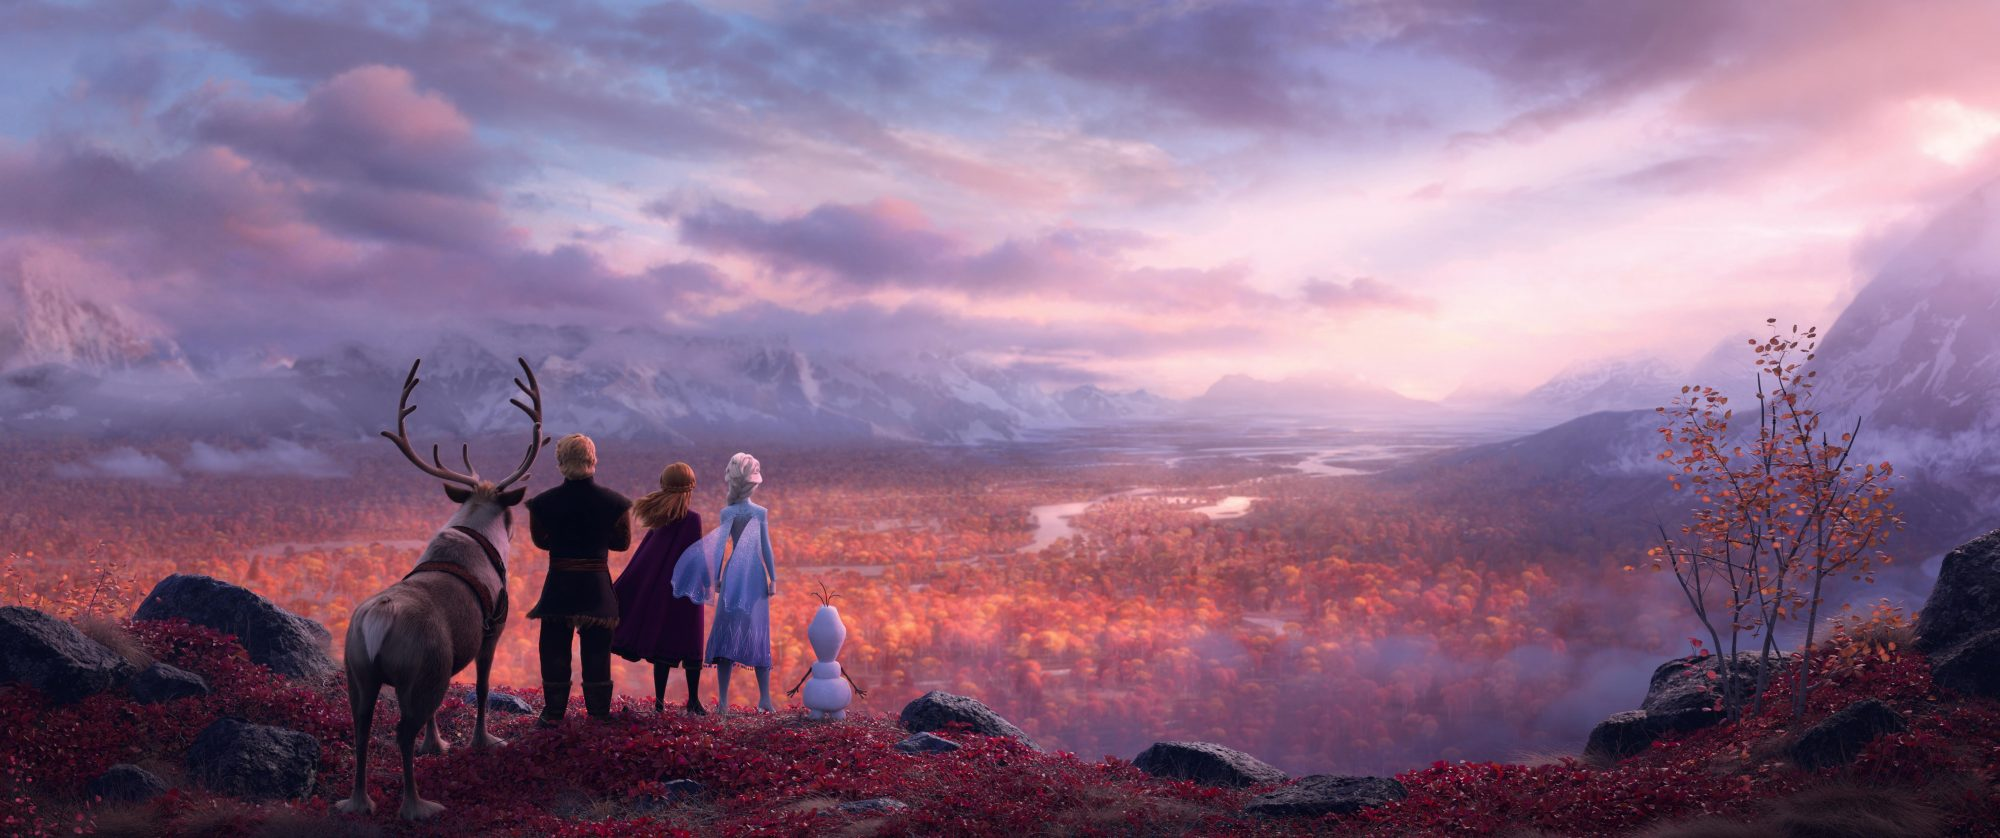 Anna and Elsa return in first teaser for Frozen 2 frozen2-print-use_firstlook_trailer1_004_frame245_cmyk